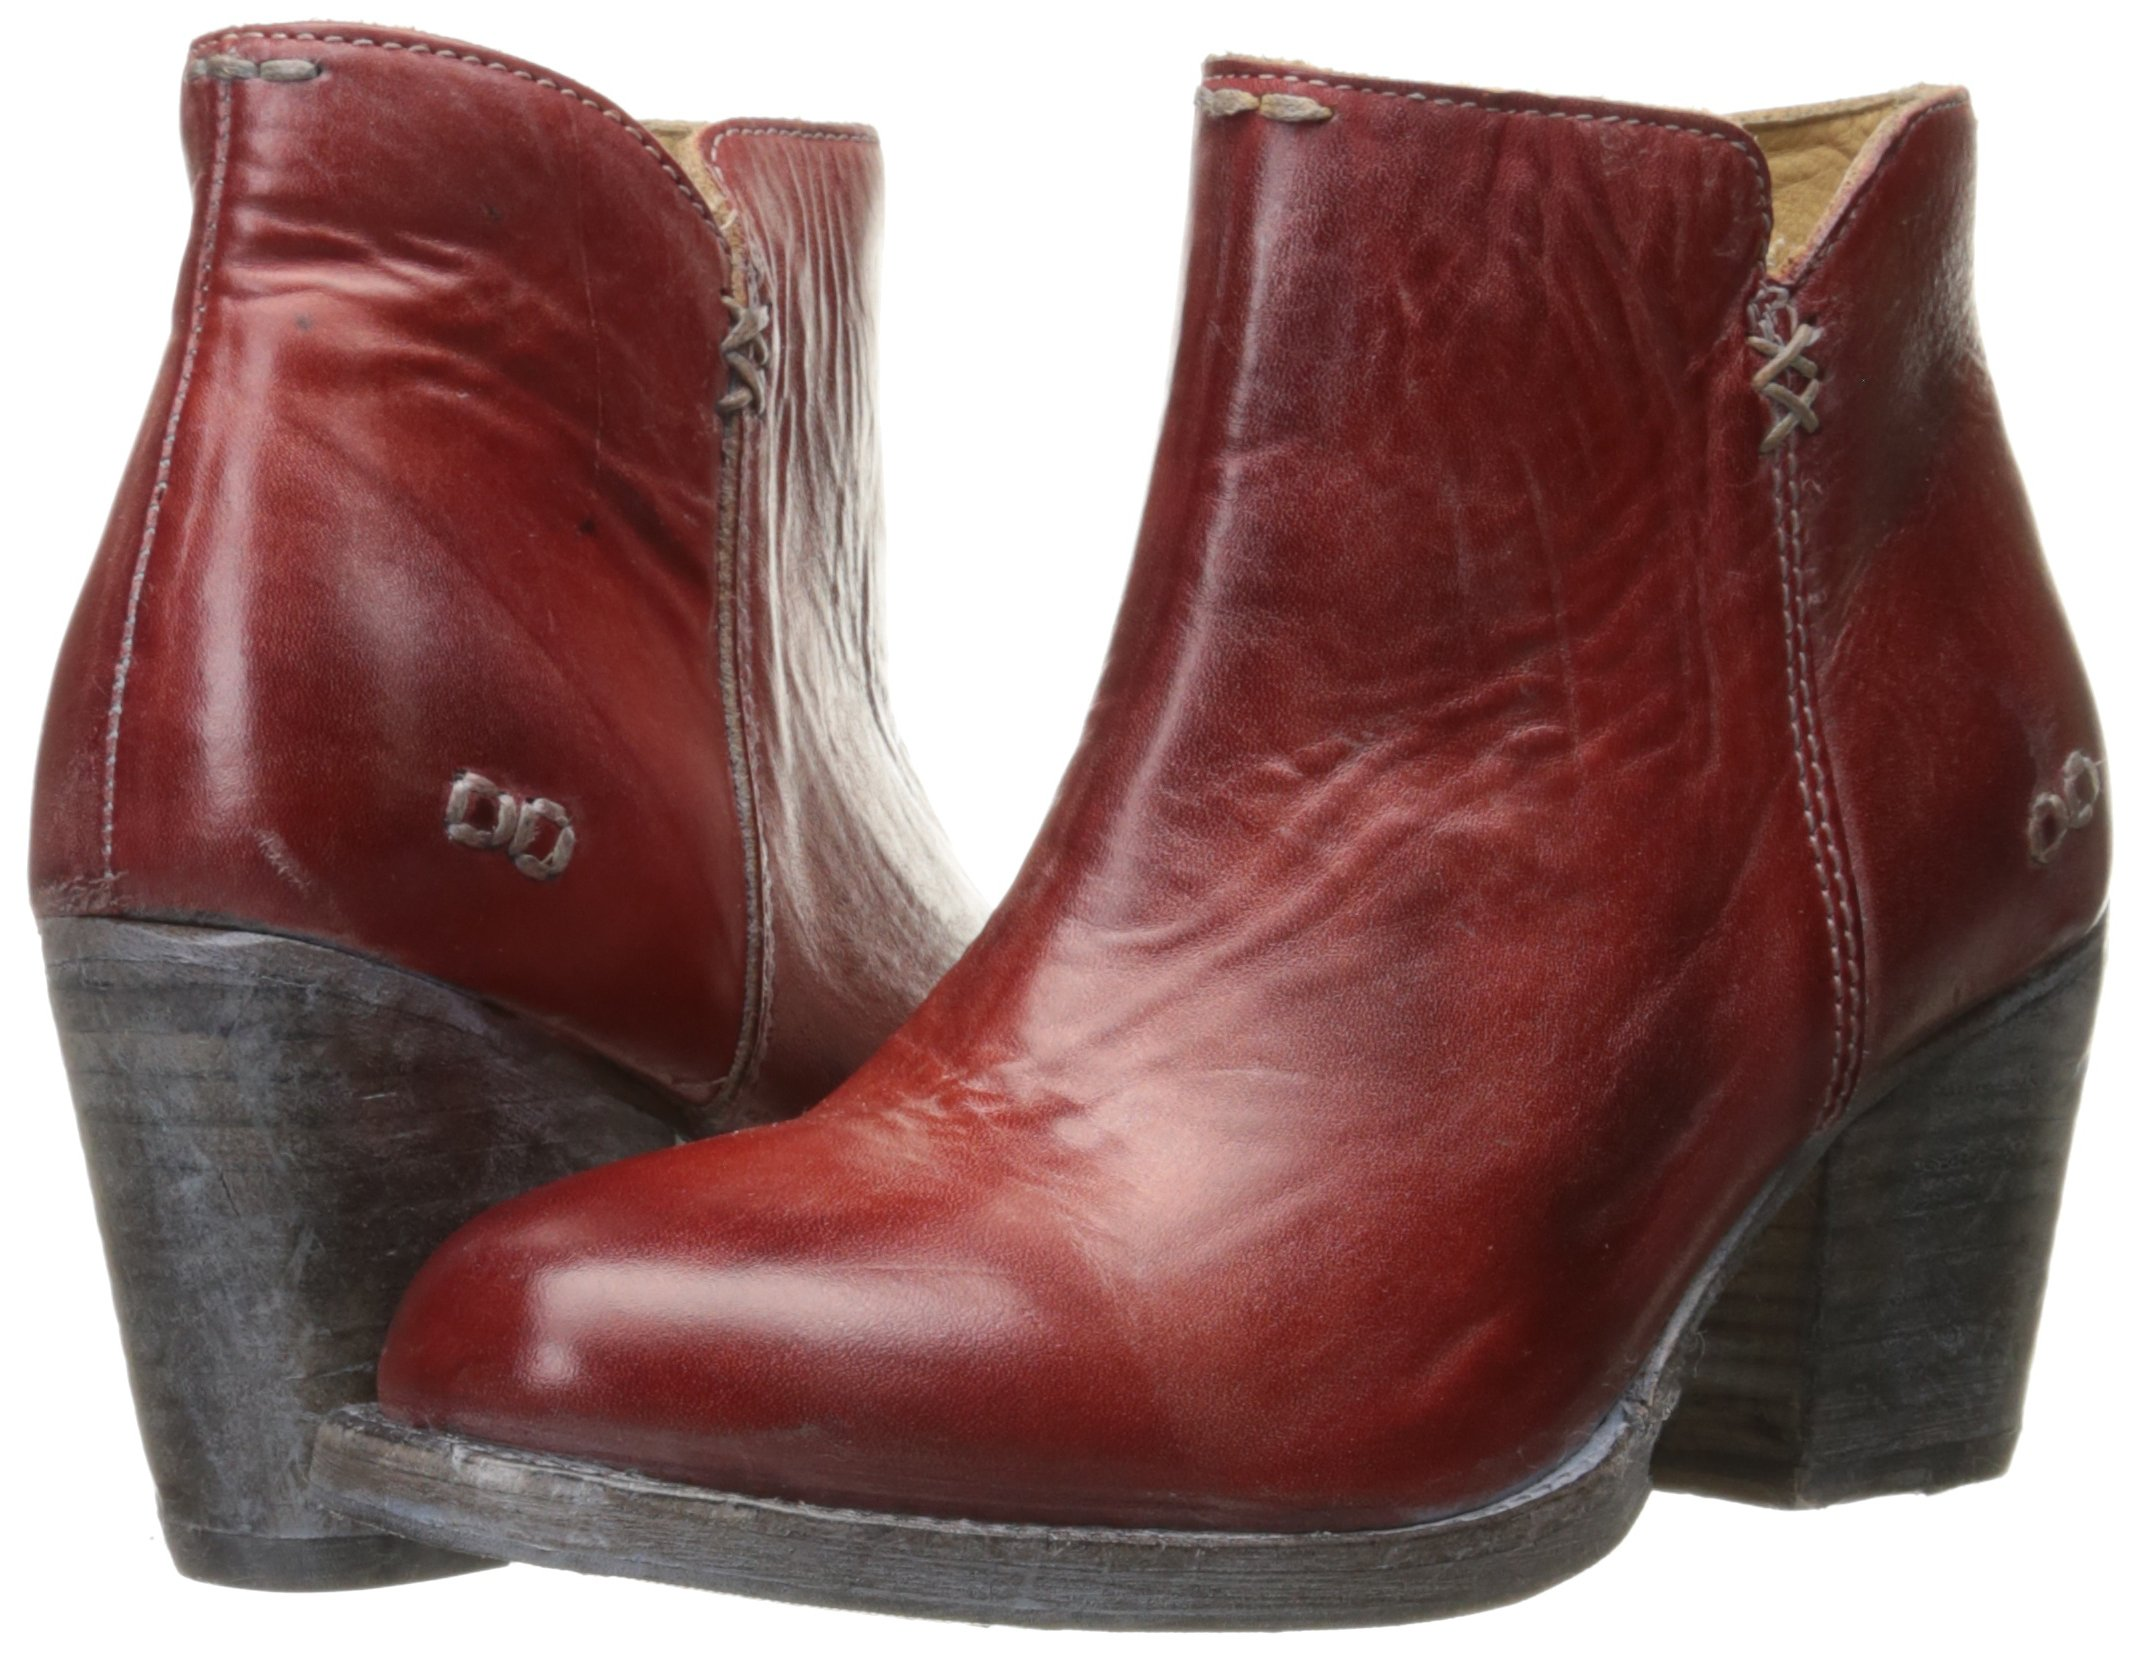 Bed|Stu Women's Yell Boot, Red Rustic/Blue, 8.5 M US by Bed|Stu (Image #6)